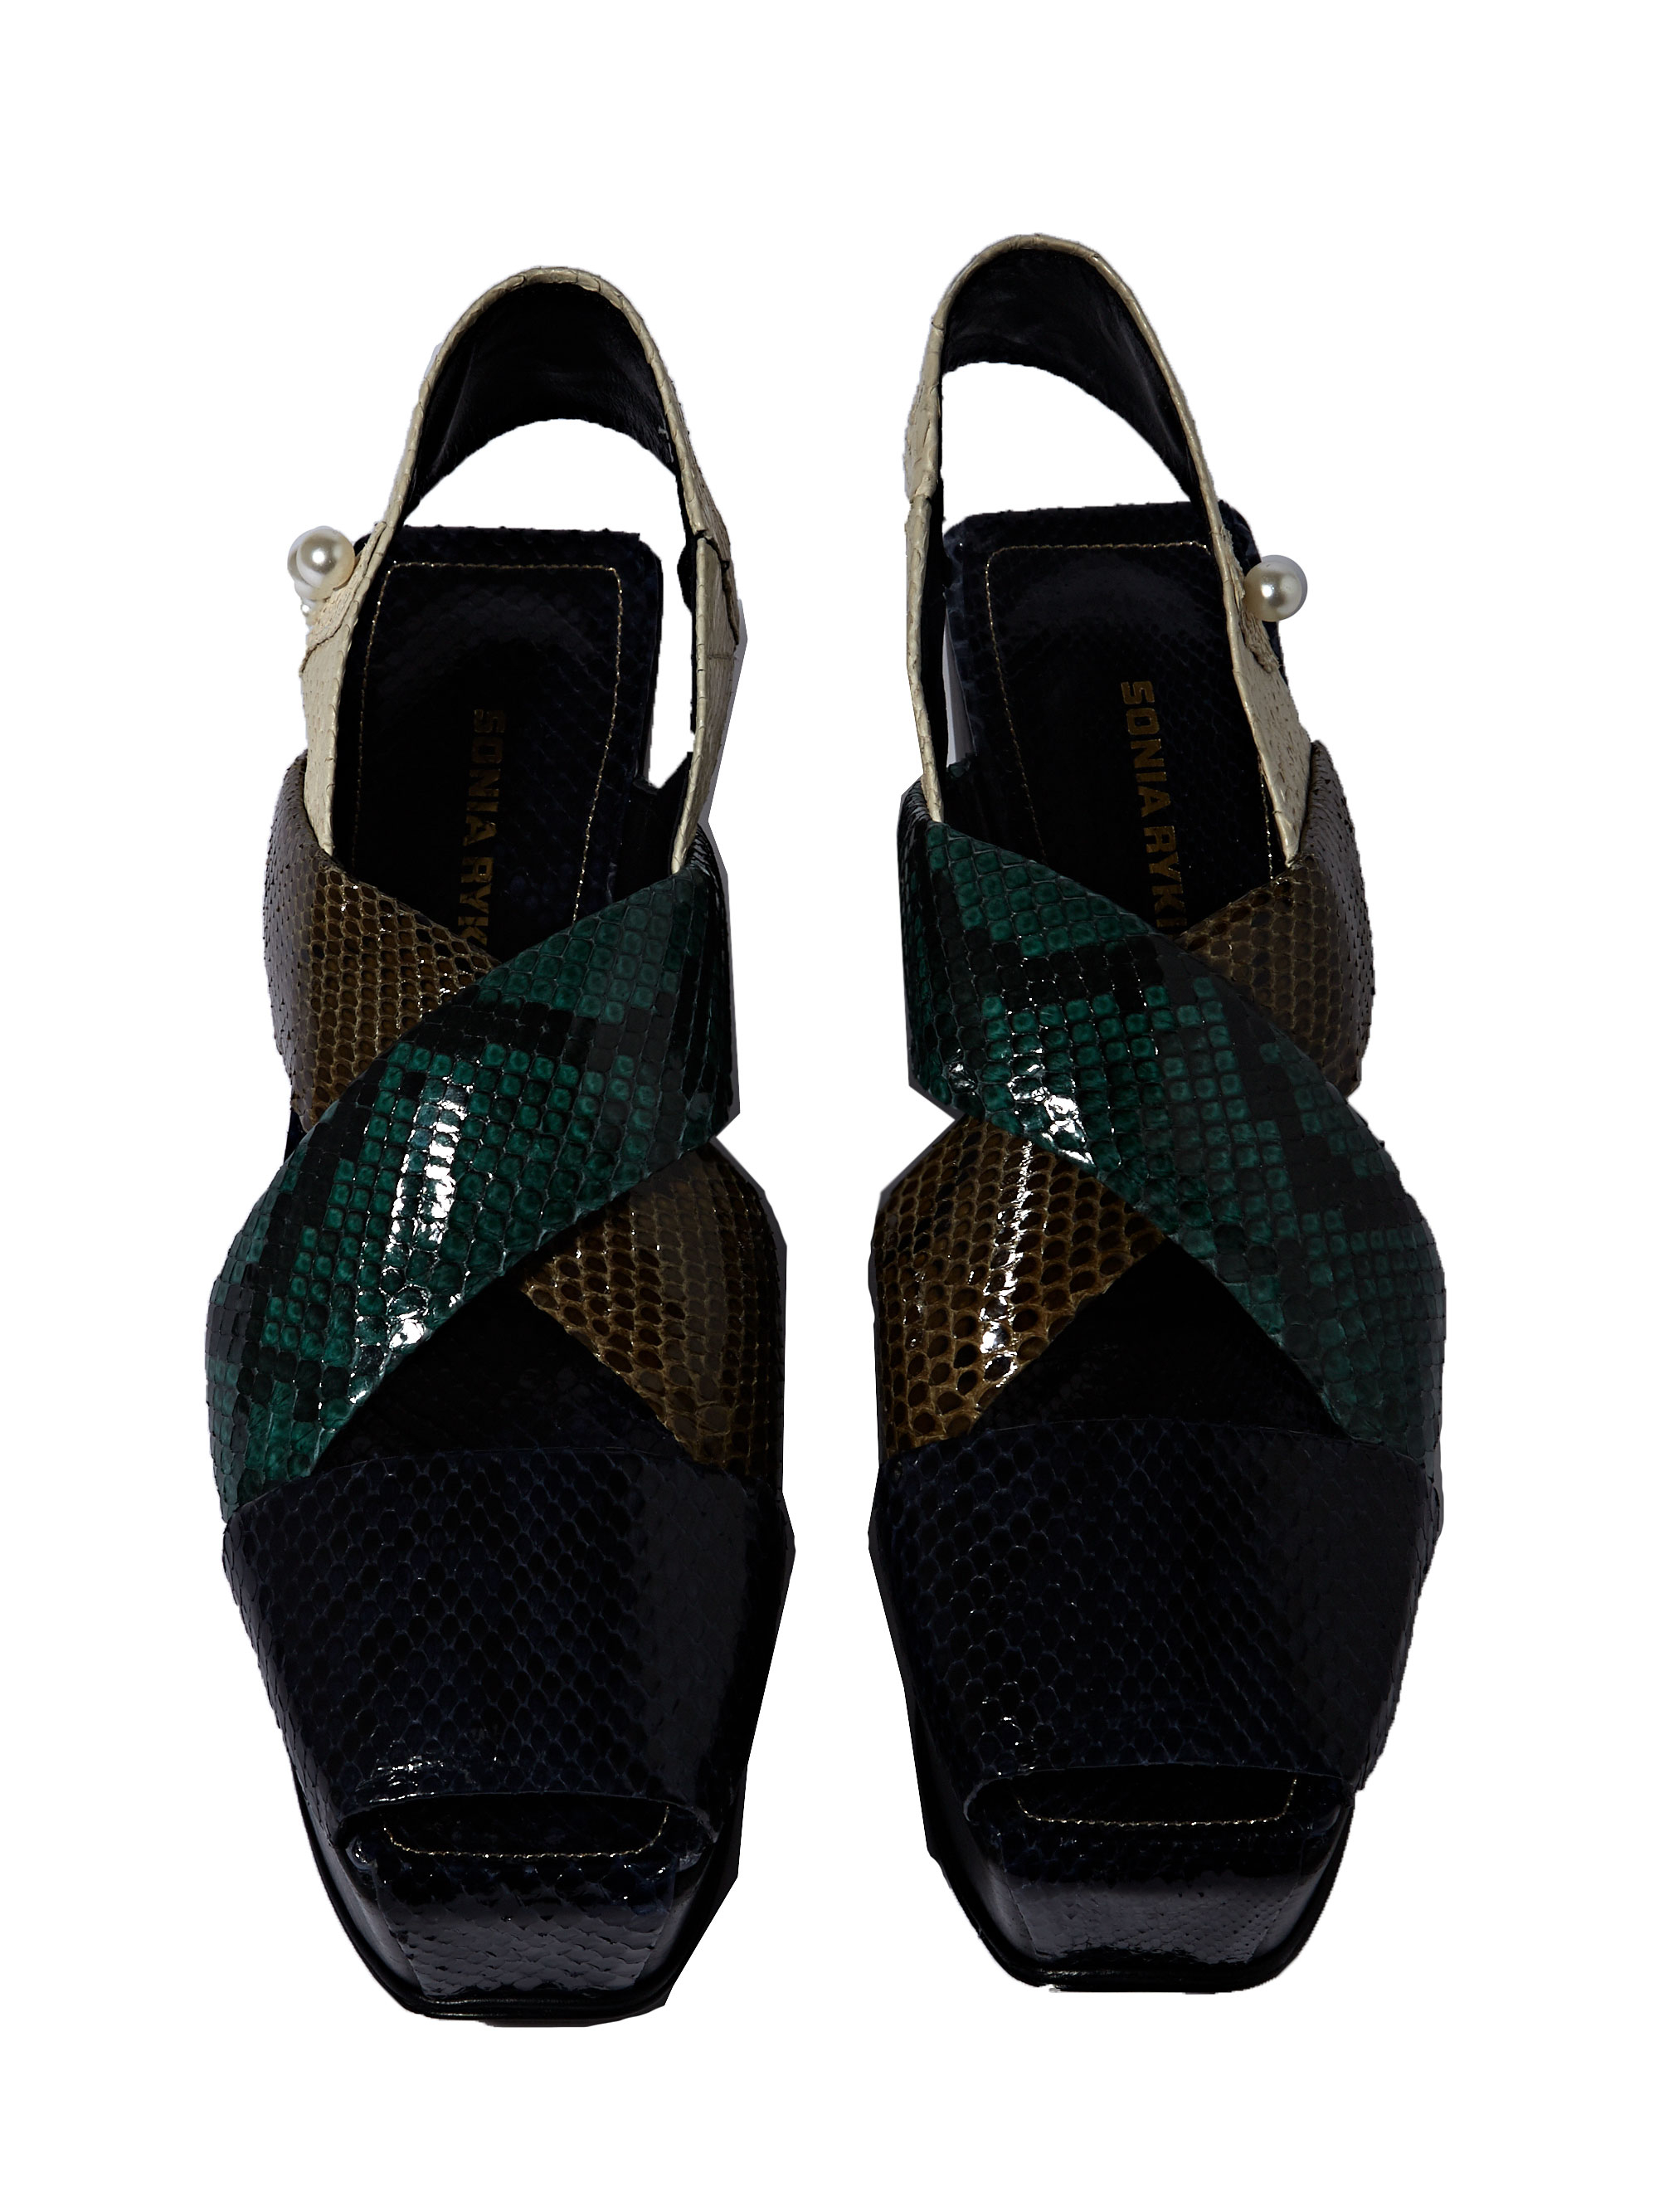 Lyst Sonia Rykiel Womens Python Plateau Sandals In Green